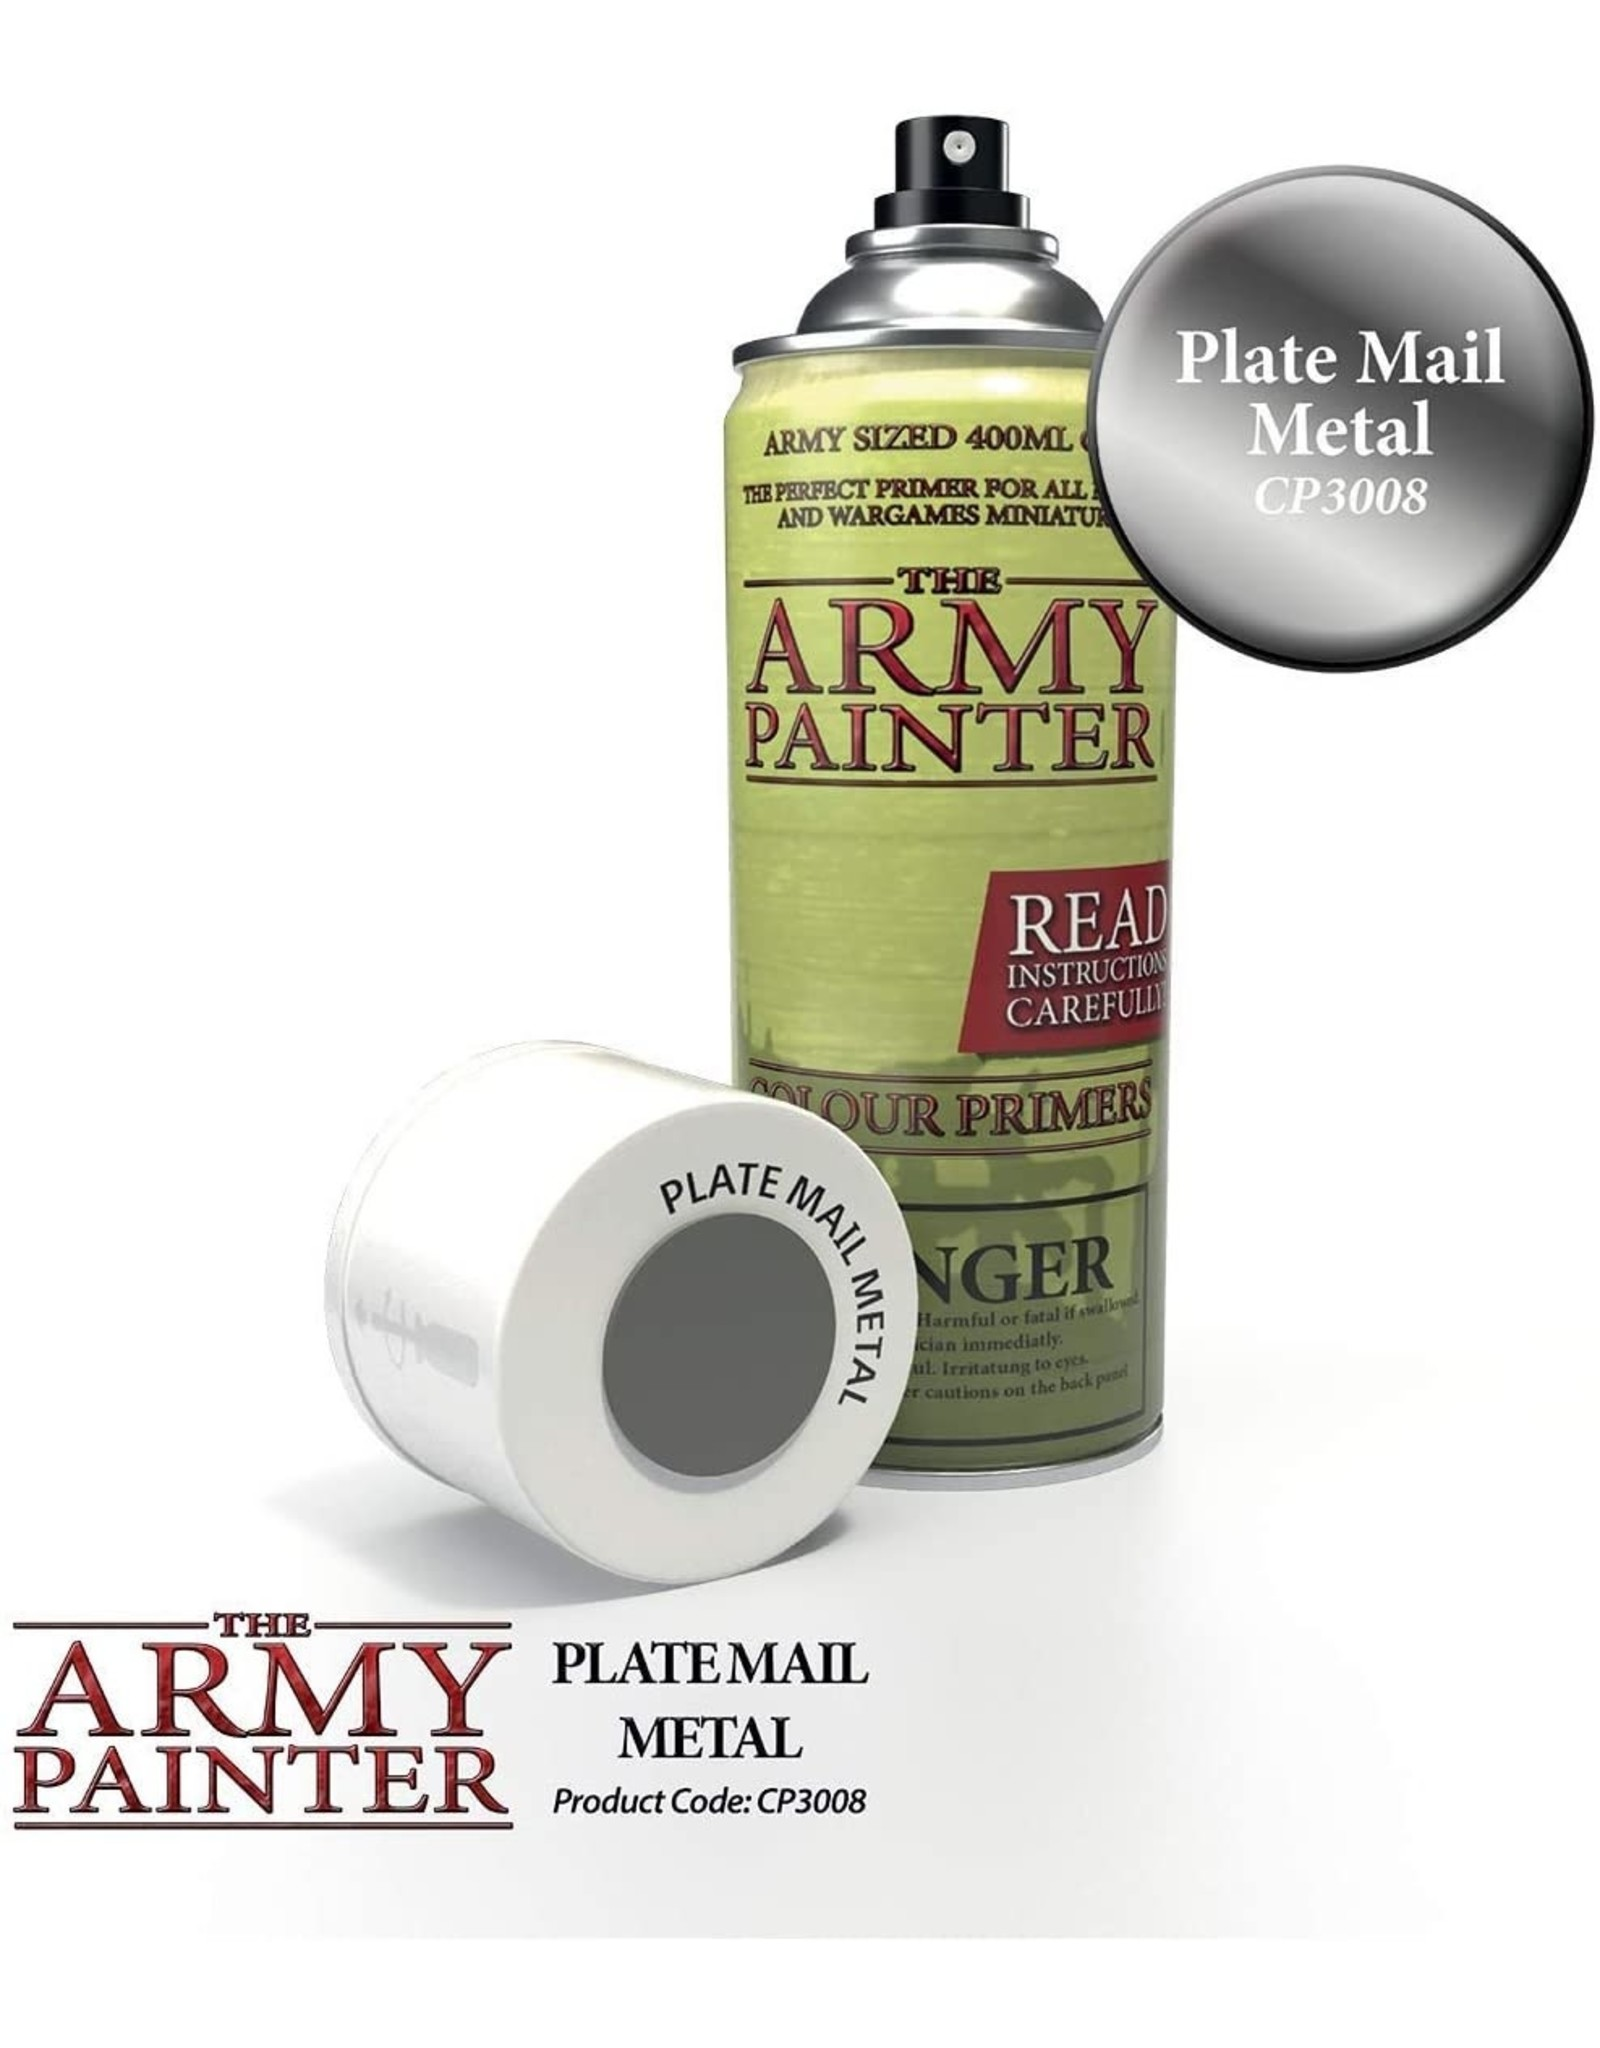 THE ARMY PAINTER ARMY PAINTER COLOR PRIMER PLATEMAIL METAL